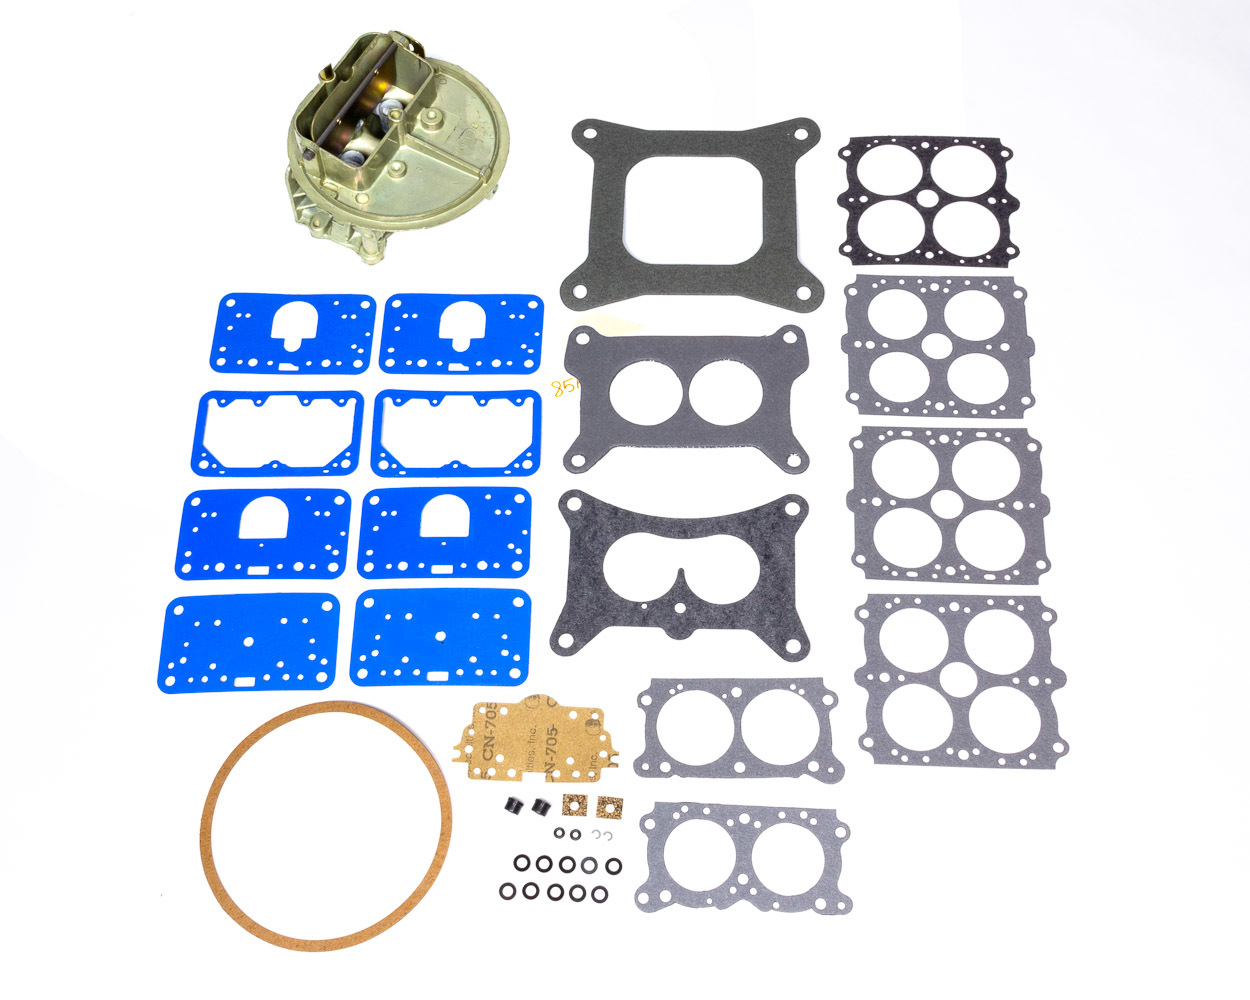 Replacement Main Body Kit for 0-7448